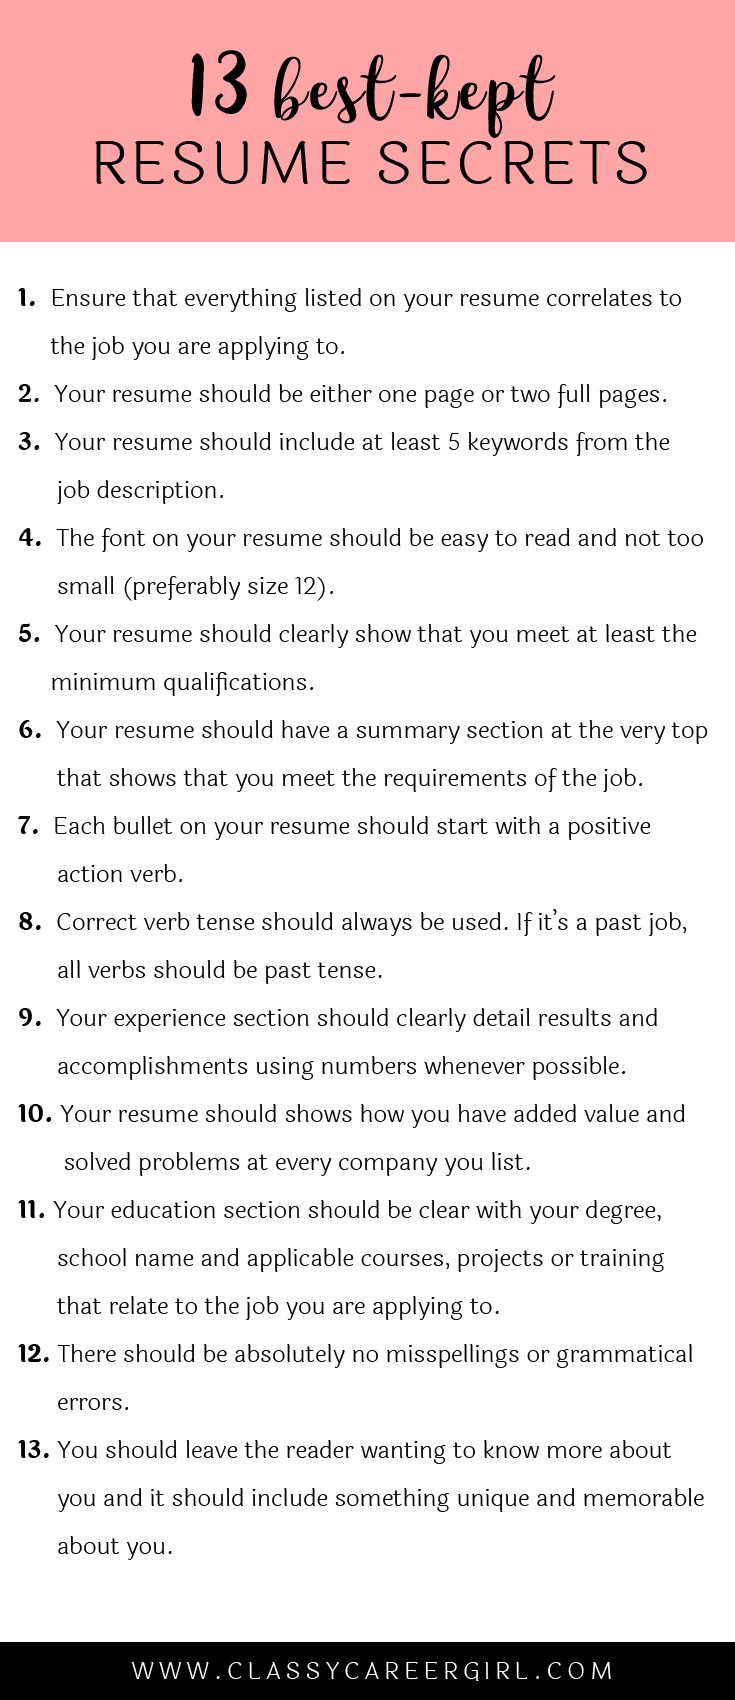 Opposenewapstandardsus  Unusual  Ideas About Resume On Pinterest  Cv Format Resume  With Handsome Some Hiring Managers Will Toss Your Resume Out If You Dont Know These  With Appealing Word Templates For Resumes Also Good Resume Profile Examples In Addition Cpa Resume Examples And Bullet Points For Resume As Well As Bartender Job Description For Resume Additionally Emergency Nurse Resume From Pinterestcom With Opposenewapstandardsus  Handsome  Ideas About Resume On Pinterest  Cv Format Resume  With Appealing Some Hiring Managers Will Toss Your Resume Out If You Dont Know These  And Unusual Word Templates For Resumes Also Good Resume Profile Examples In Addition Cpa Resume Examples From Pinterestcom